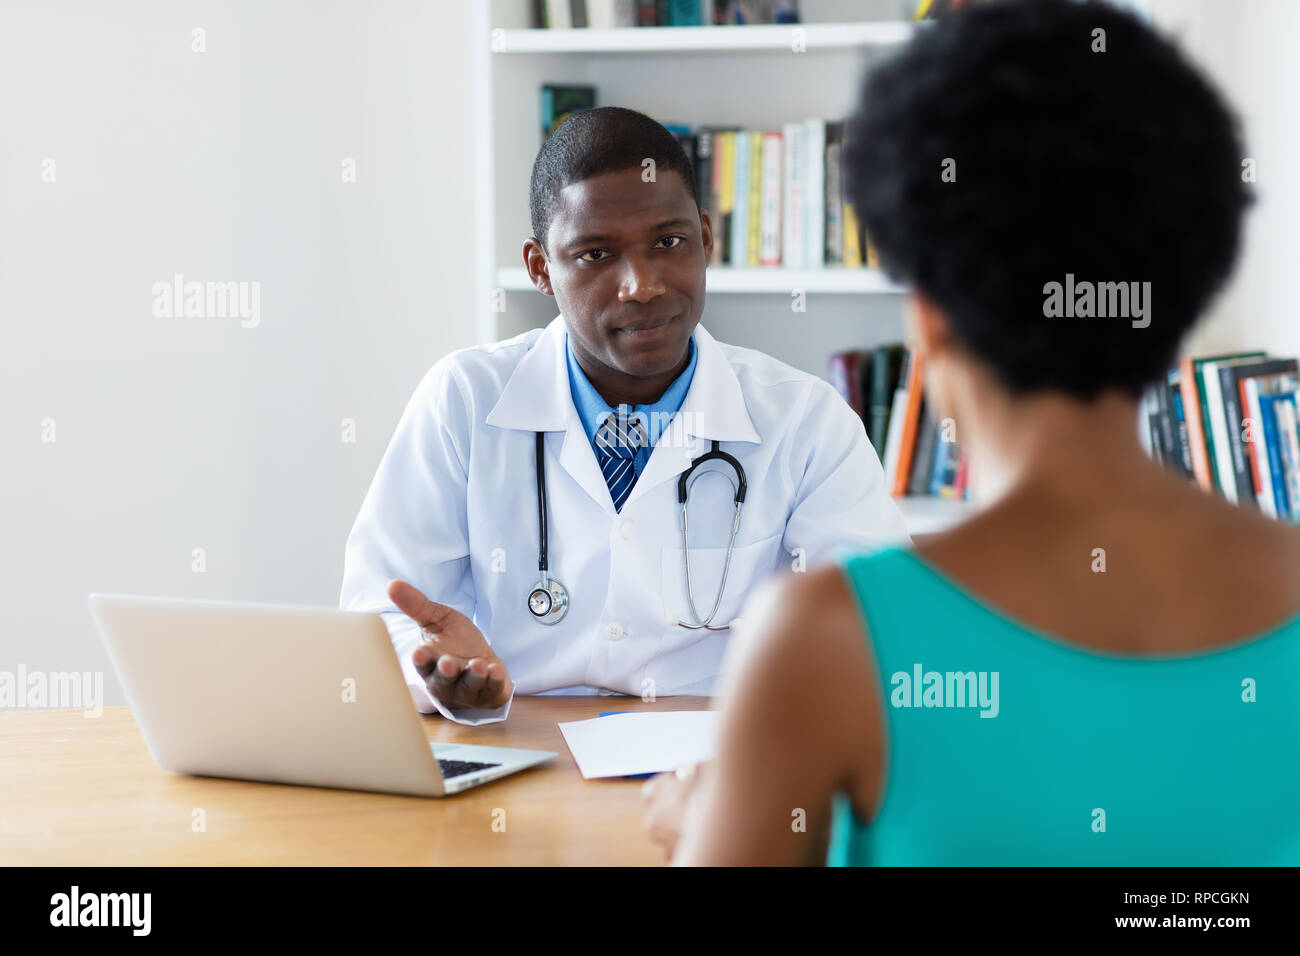 African american doctor explaining diagnosis to female patient at hospital - Stock Image